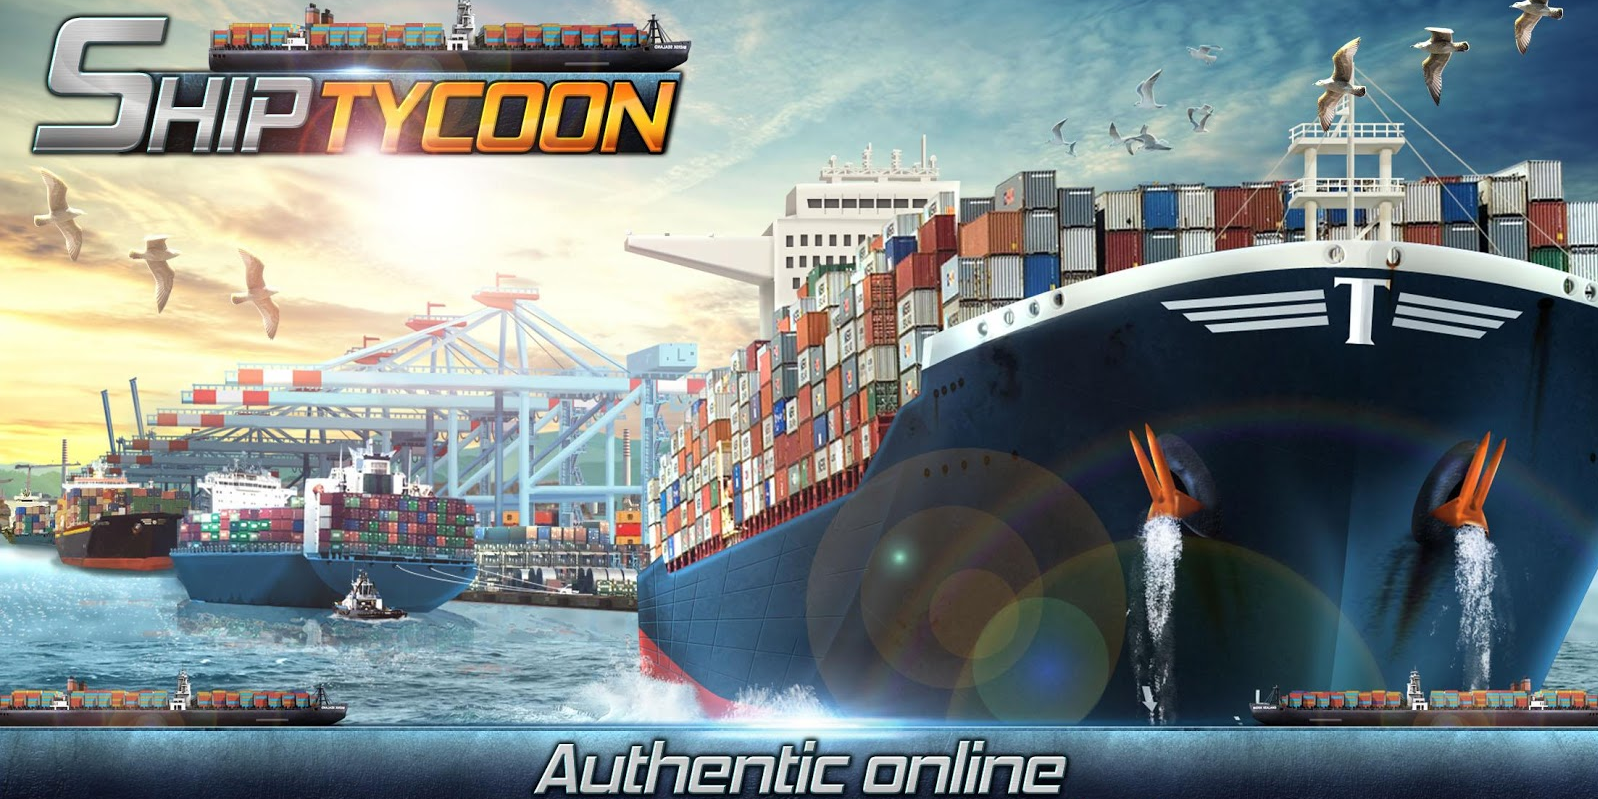 Ship Tycoon business management games for Android & iOS 2018